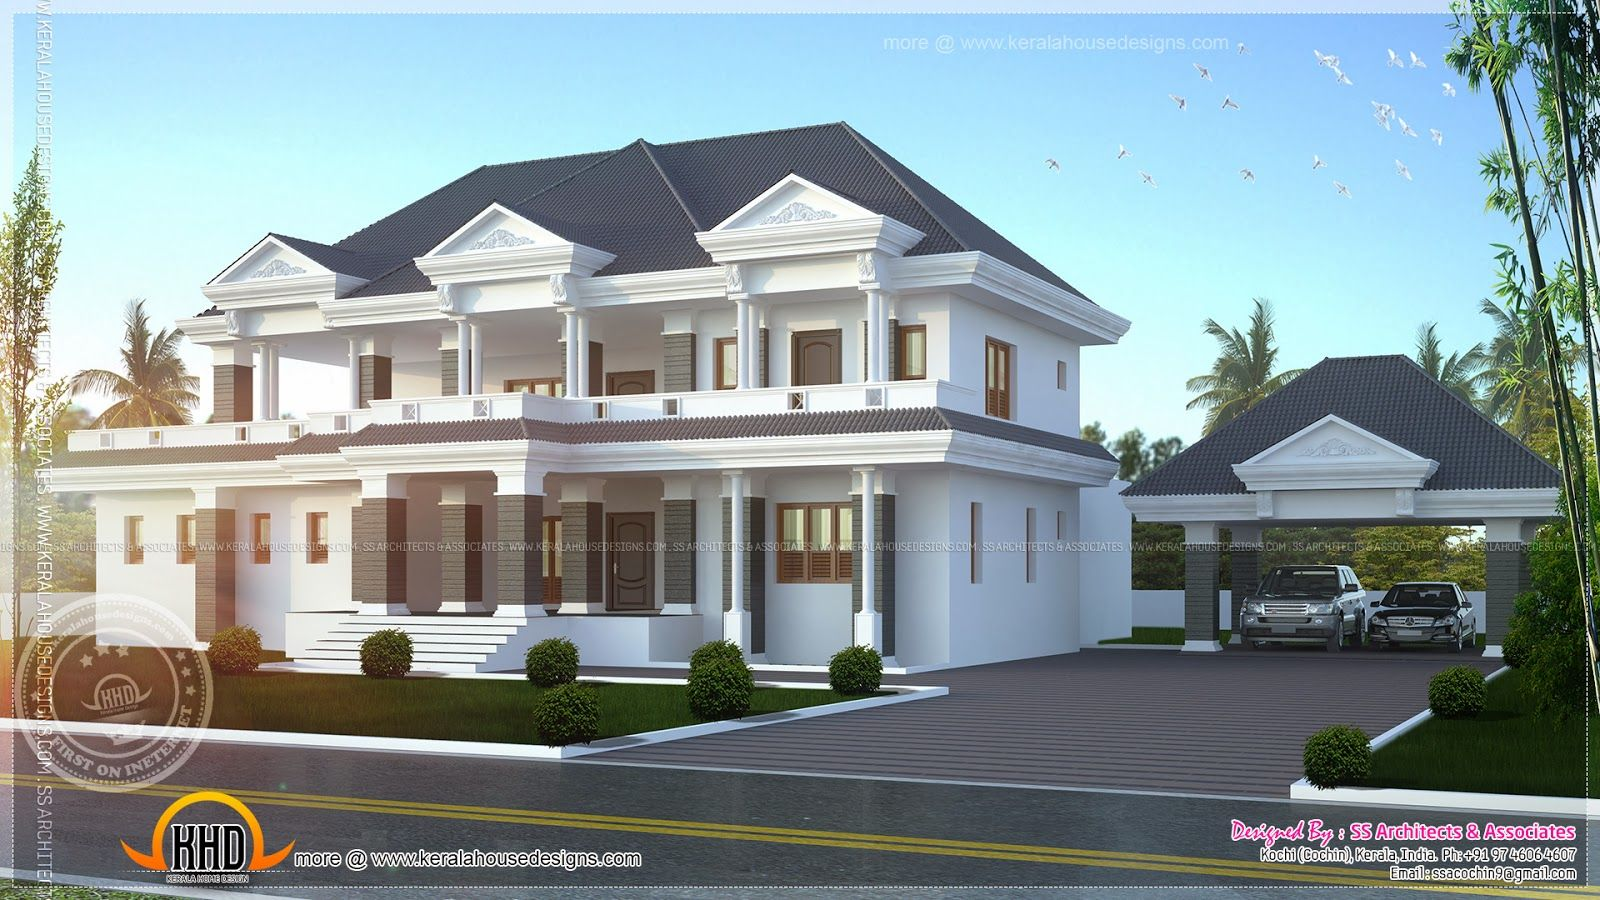 Luxury house plans posh luxury home plan audisb luxury for Home plans hd images